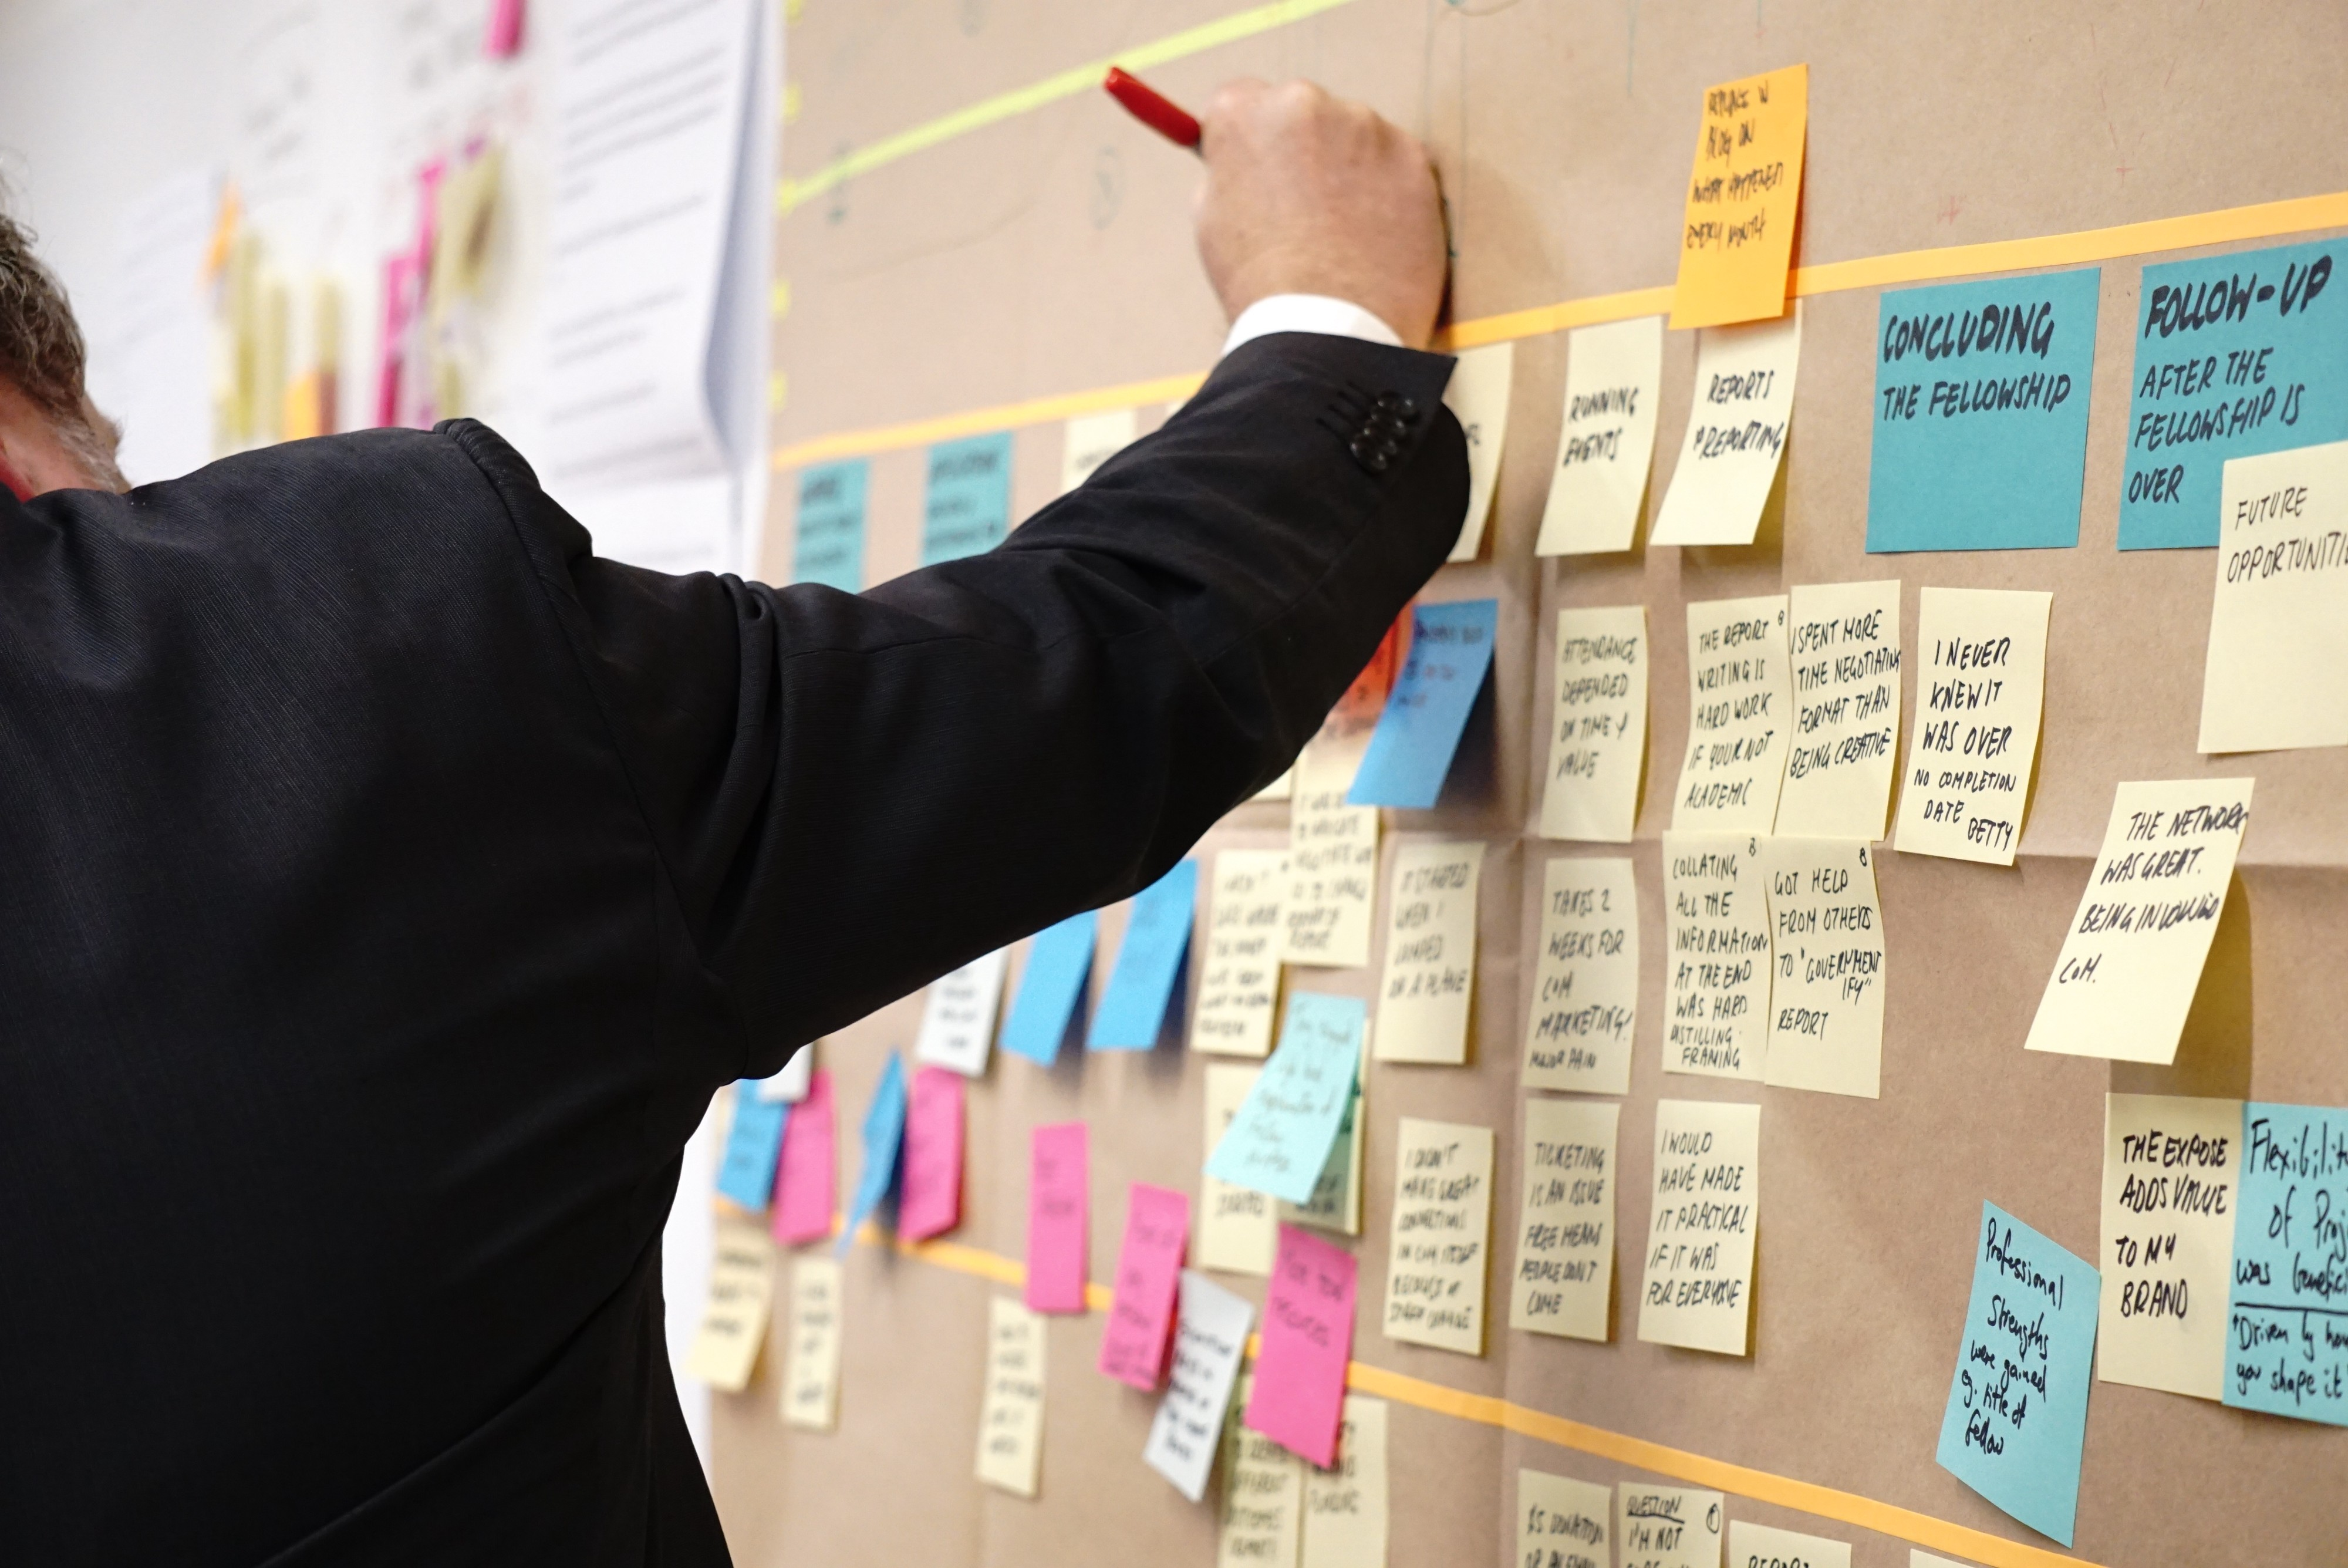 Man in a suit writes something down on a board with a bunch of sticky notes